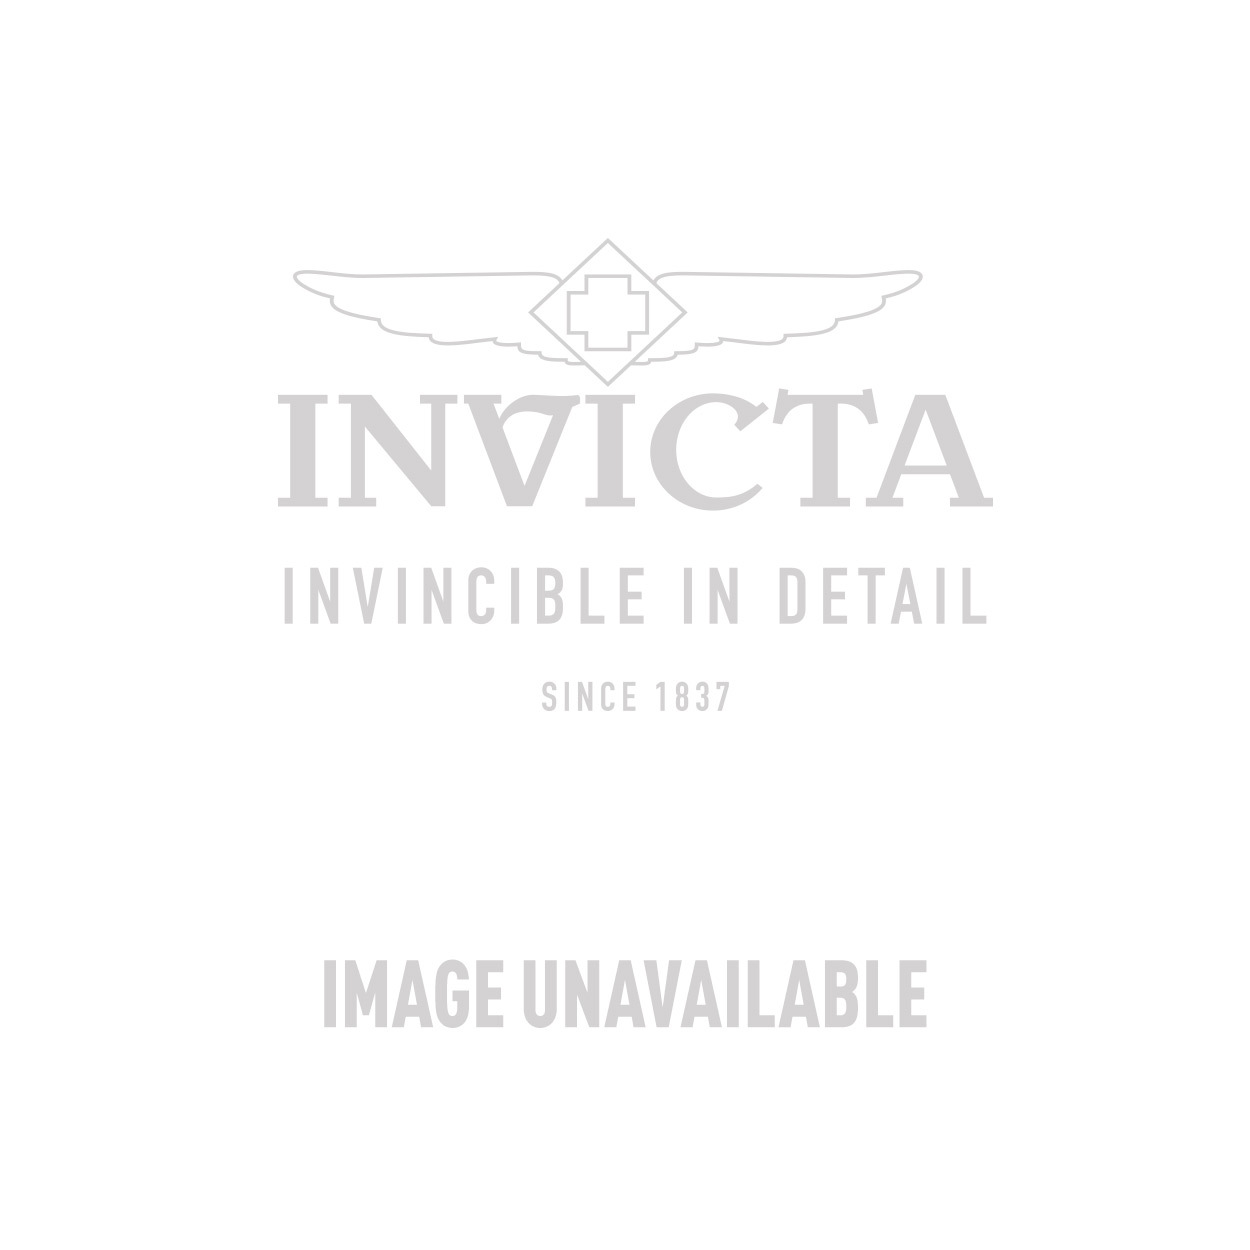 Invicta Venom Swiss Made Quartz Watch - Stainless Steel case Stainless Steel band - Model 11787